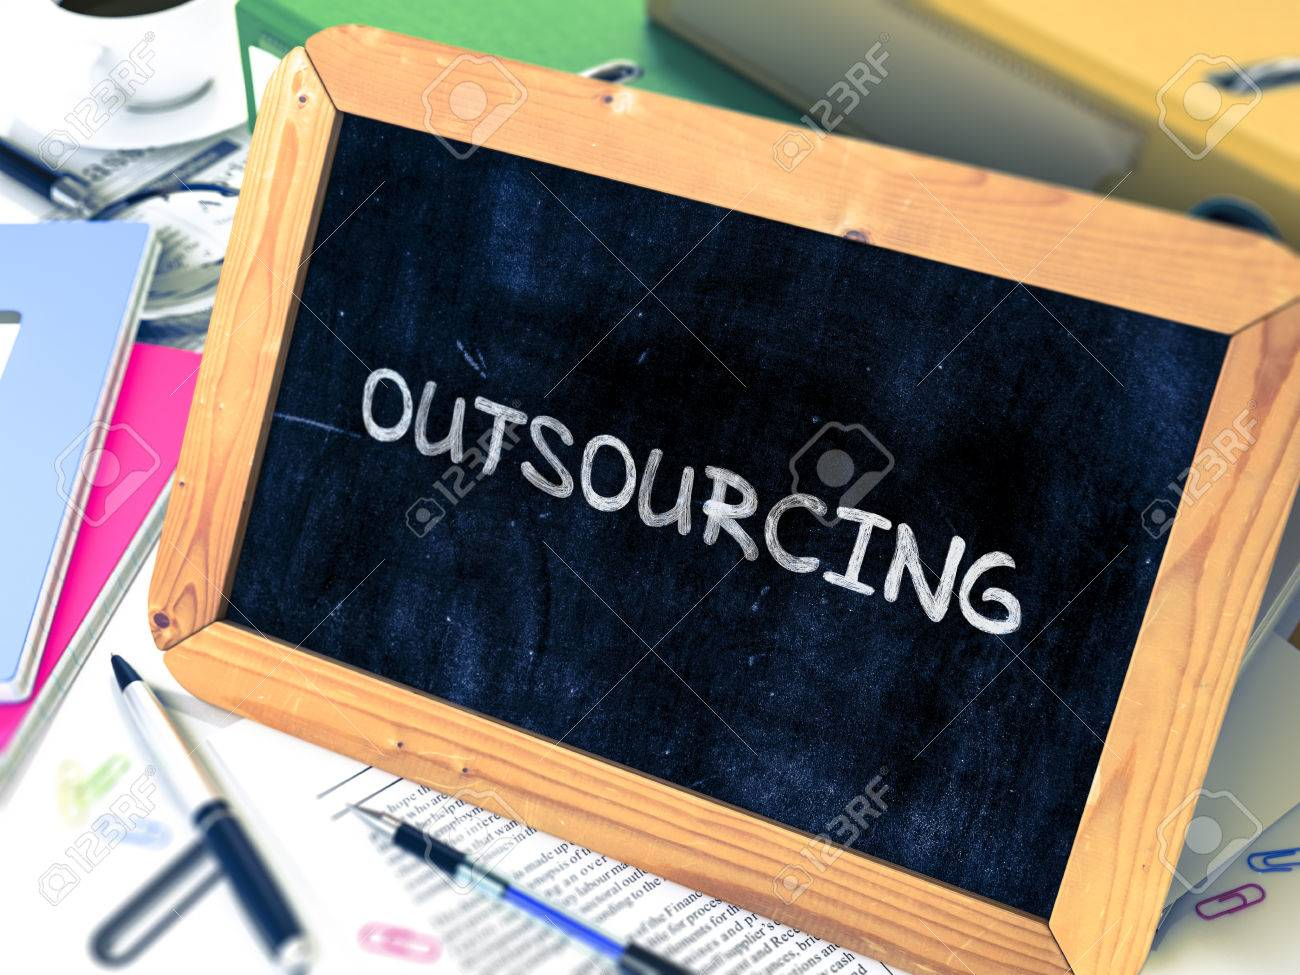 outsourcing handwritten by chalk on a blackboard composition